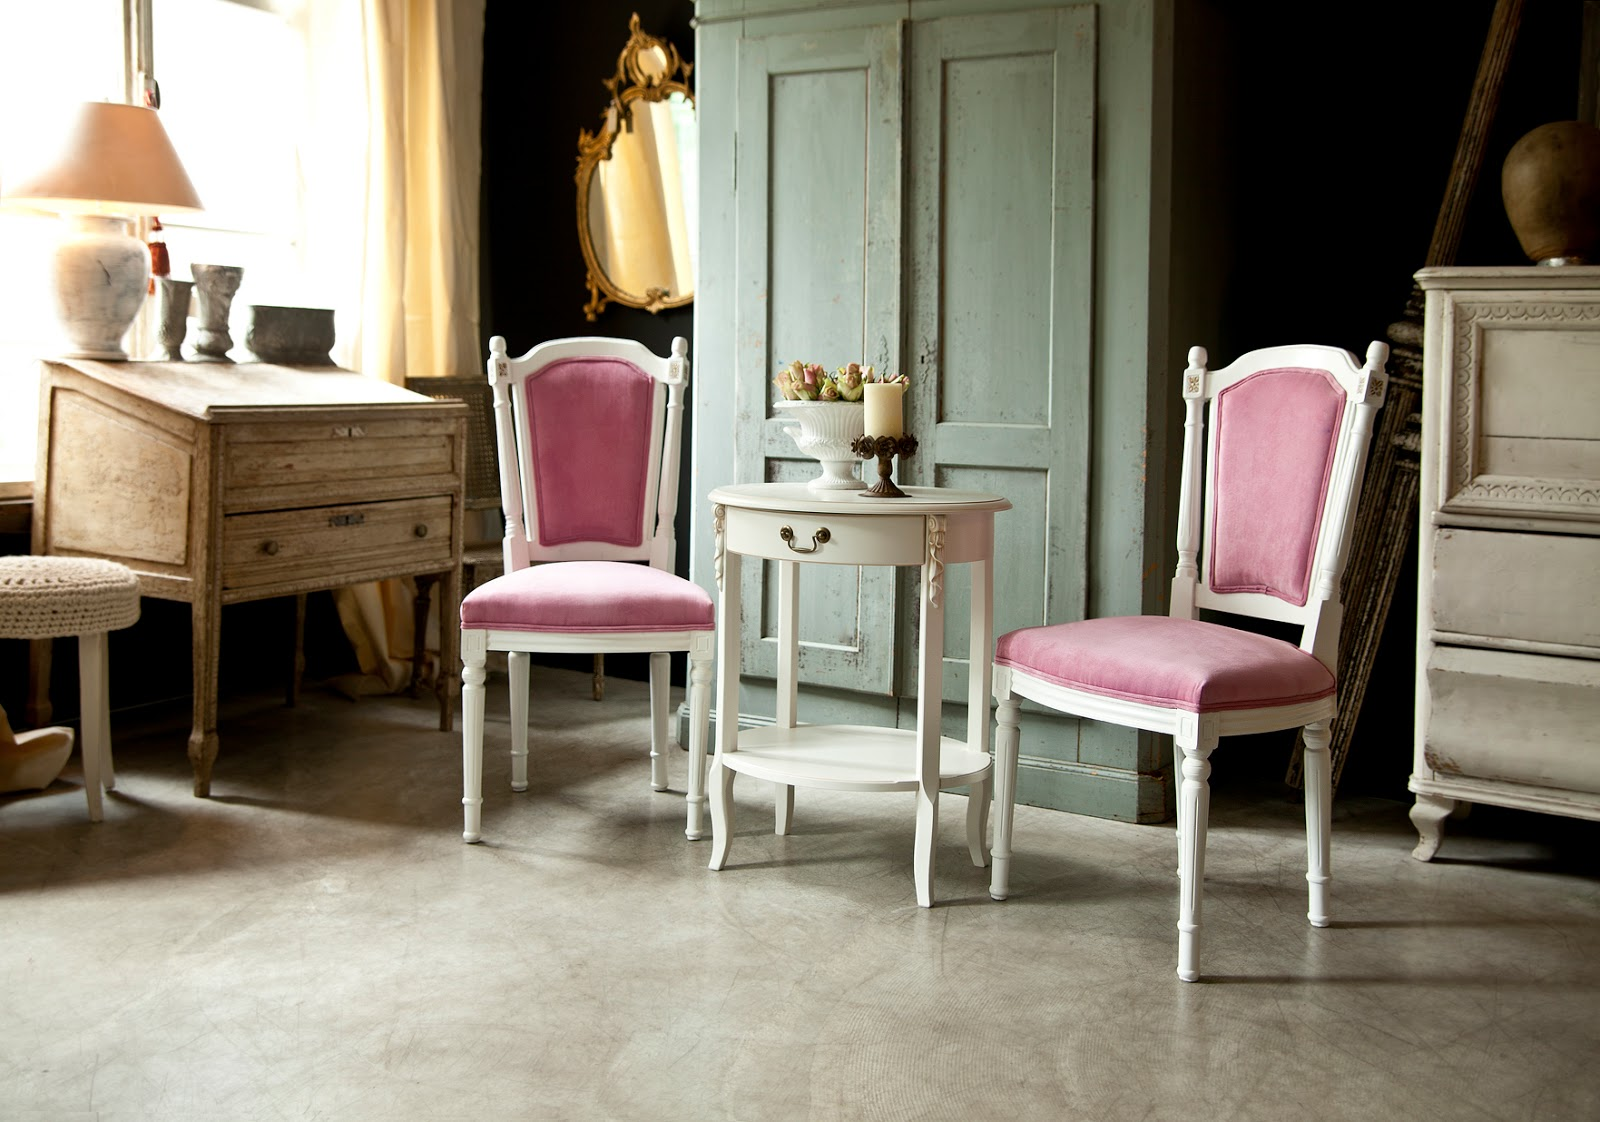 Armadio In Francese Come Si Dice Country Francese Shabby Chic Interiors